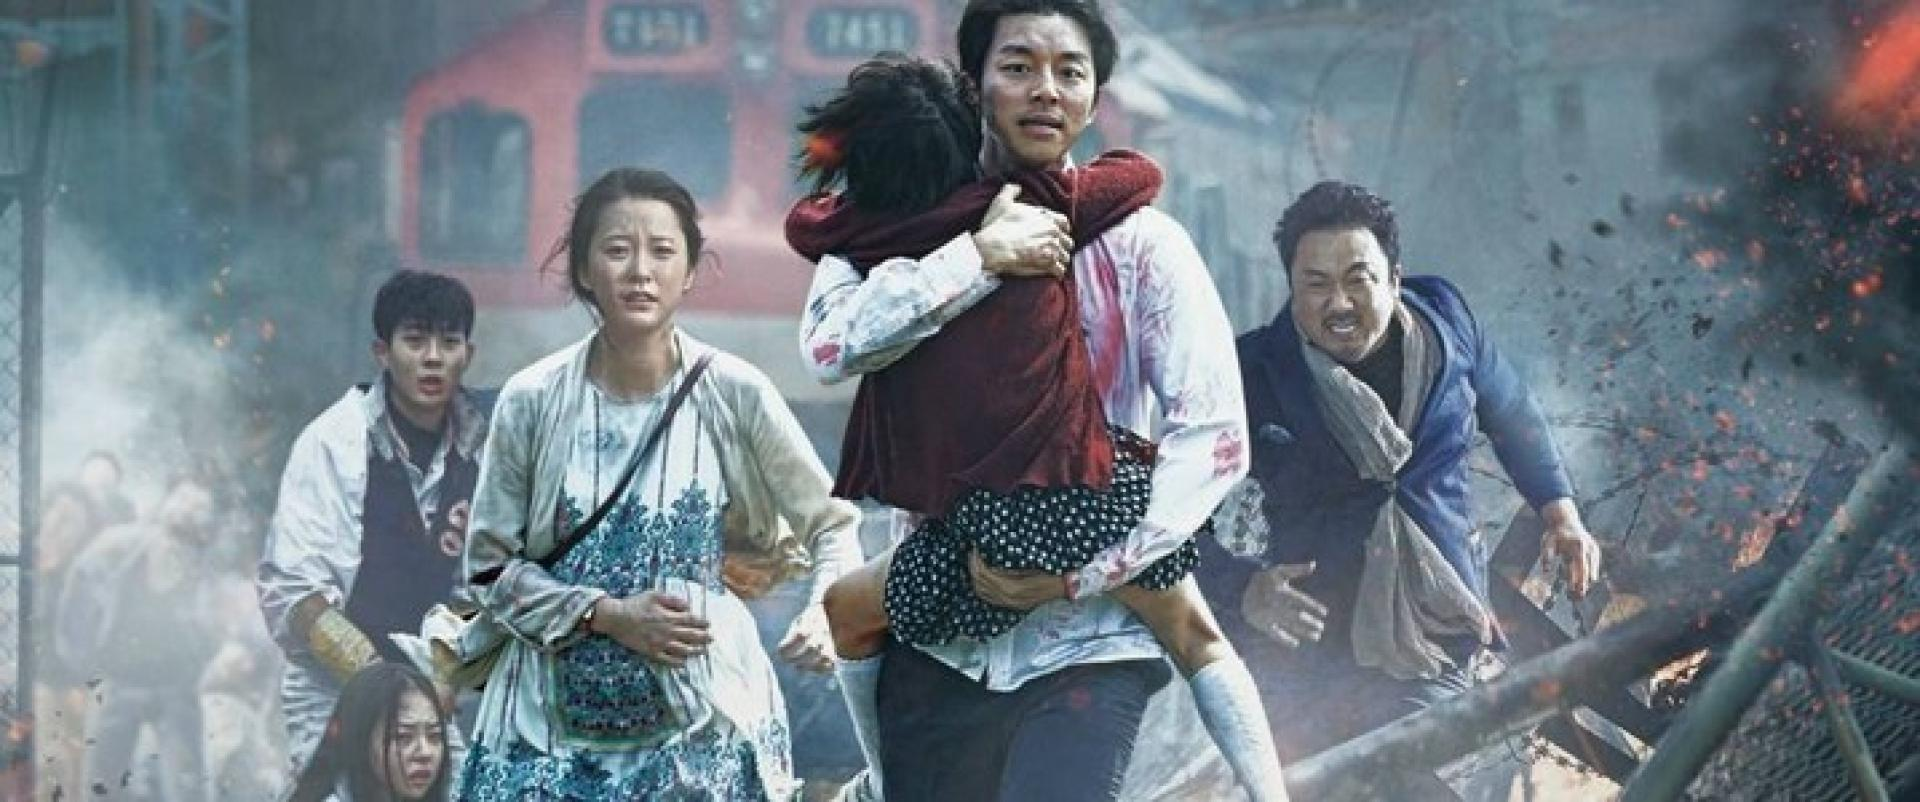 Ázsiai extrém 44. - Train to Busan (2016)